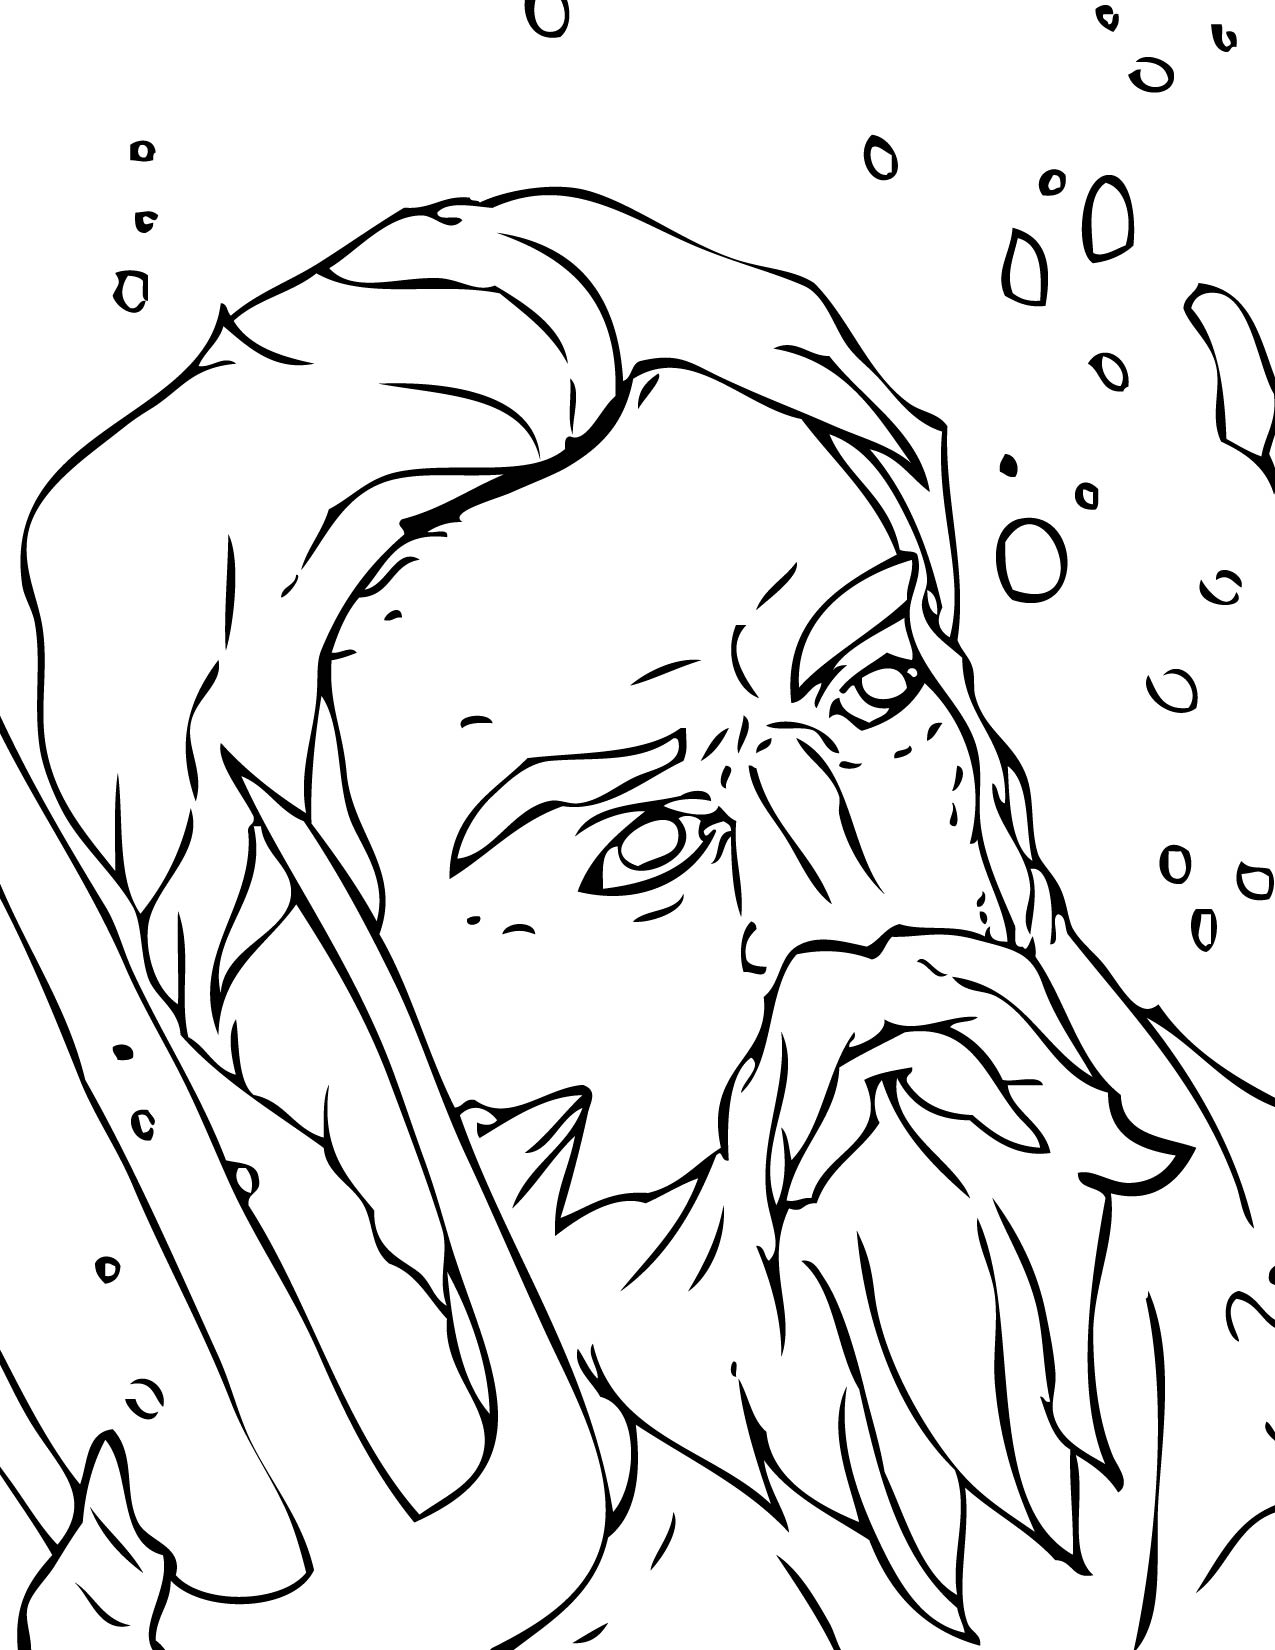 ancient greece gods coloring pages photo - 1